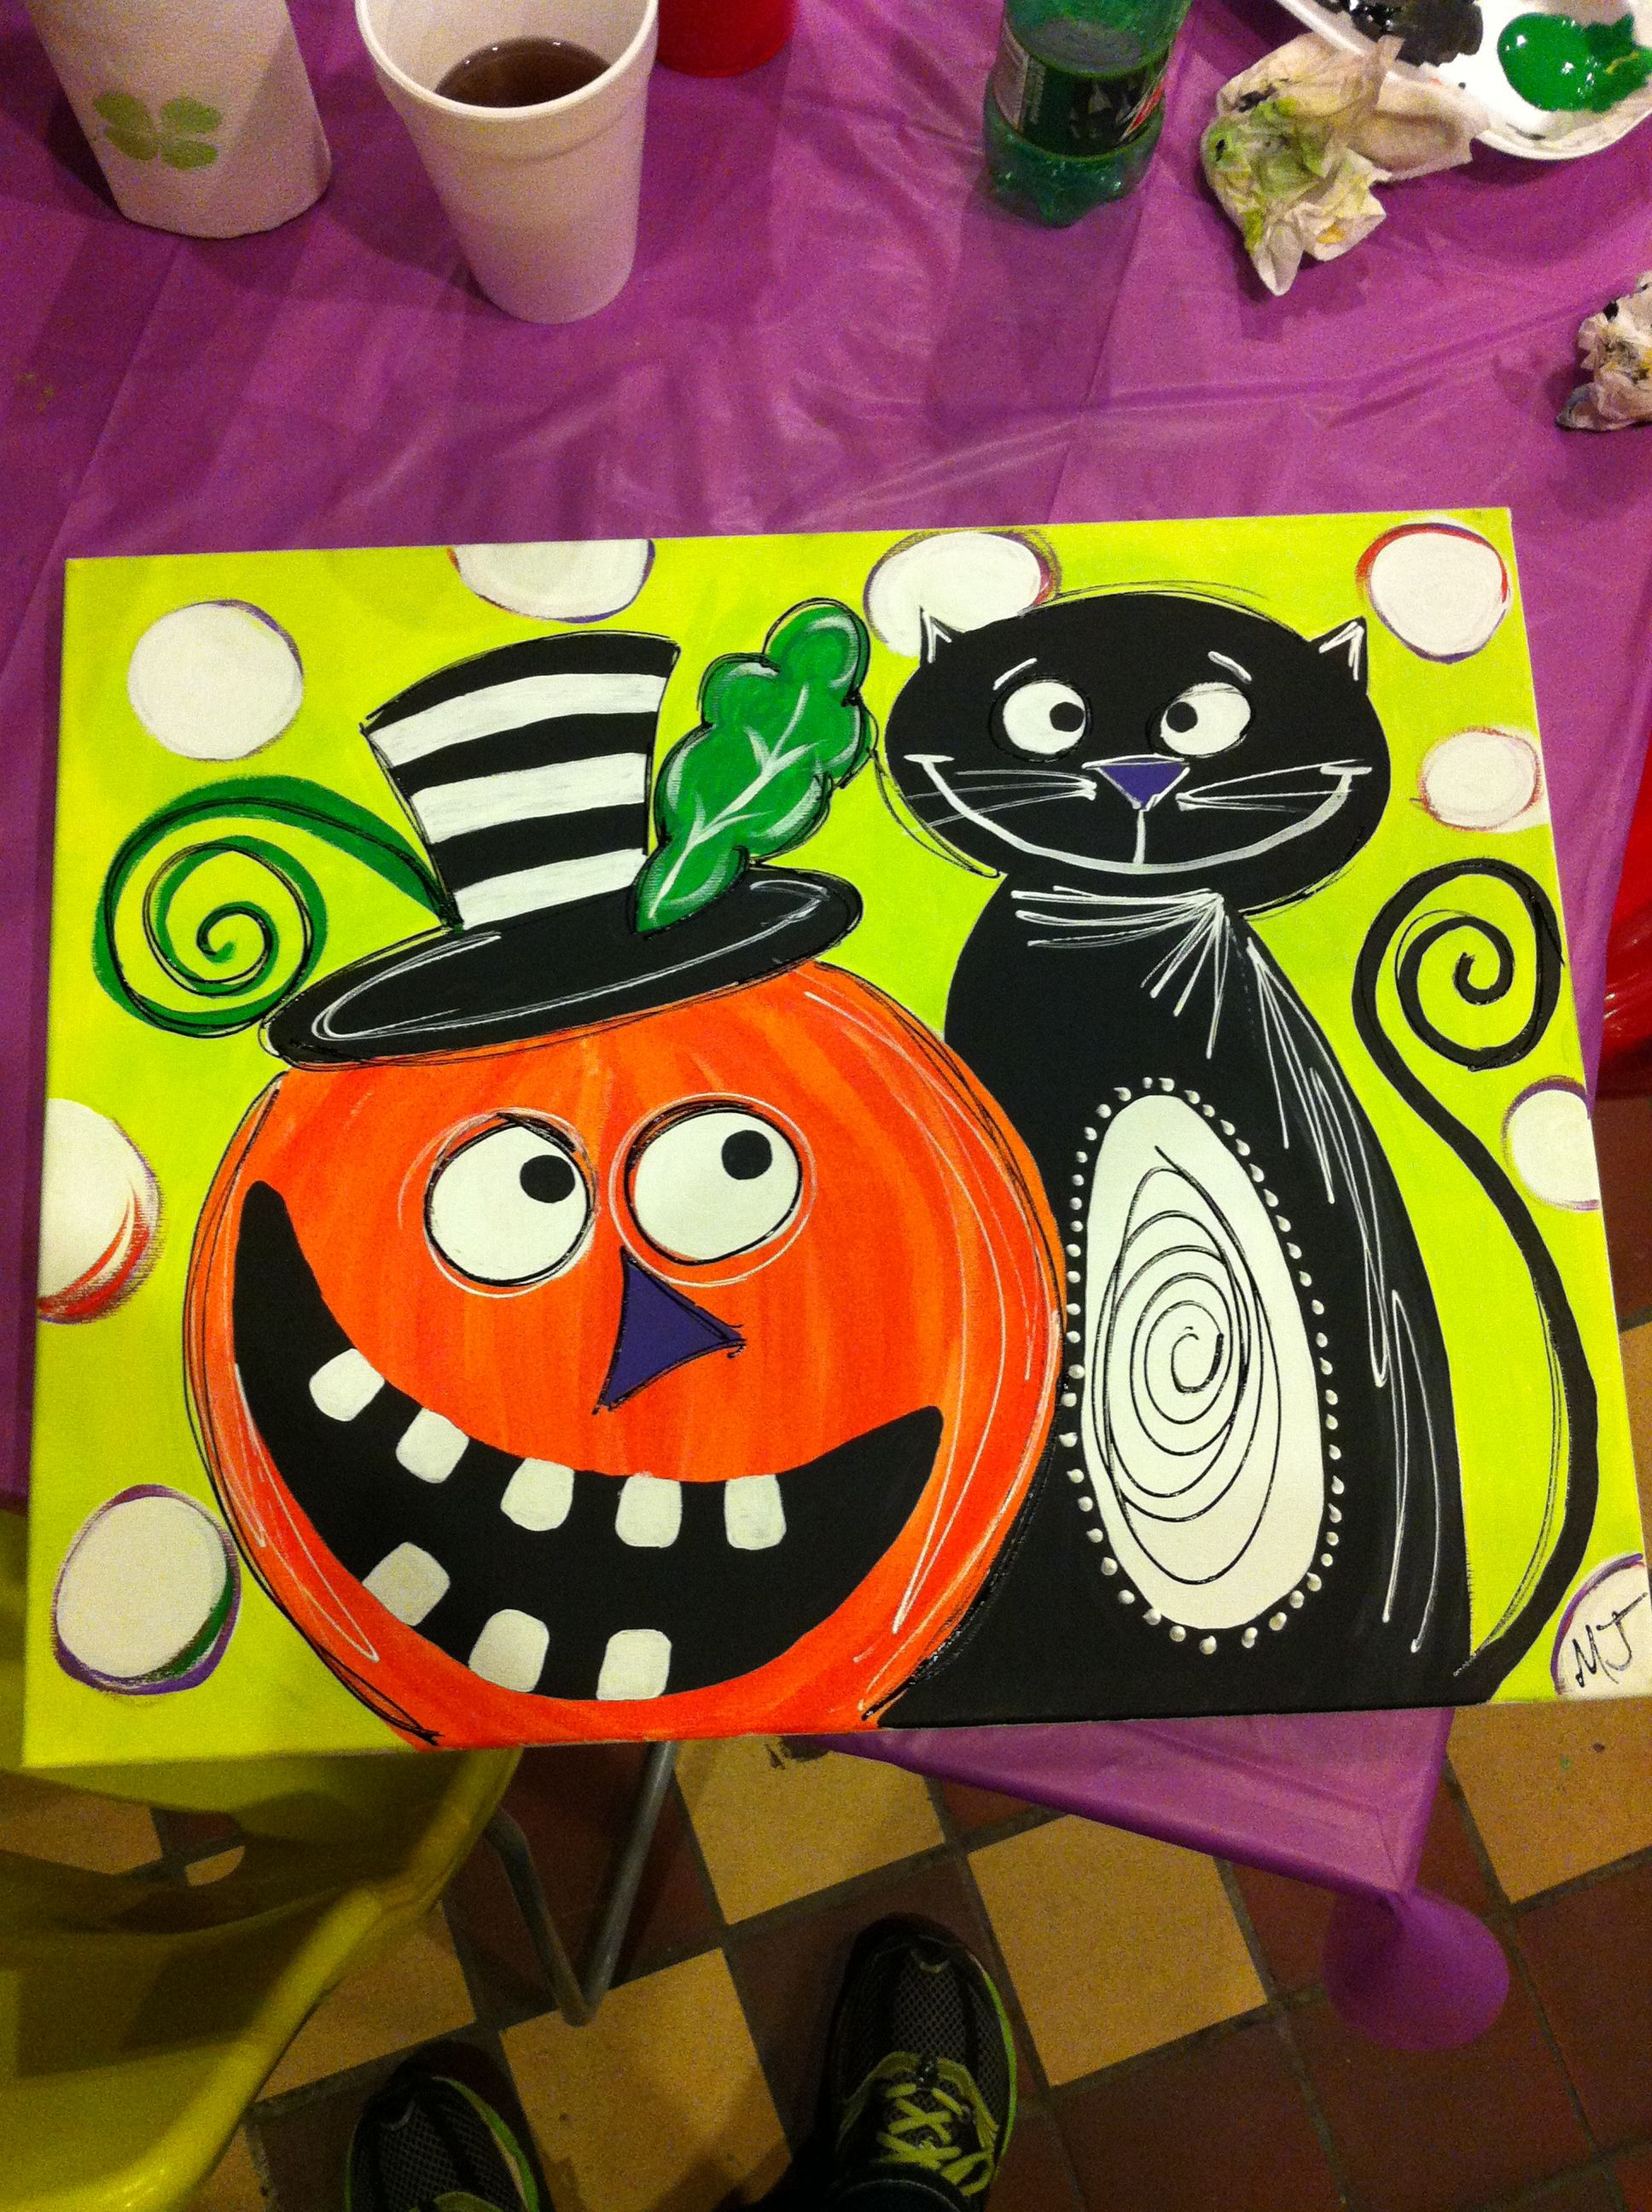 Pin By Mikki Lex On Canvas Diy Ideas With Images Halloween Canvas Art Halloween Painting Kids Canvas Art